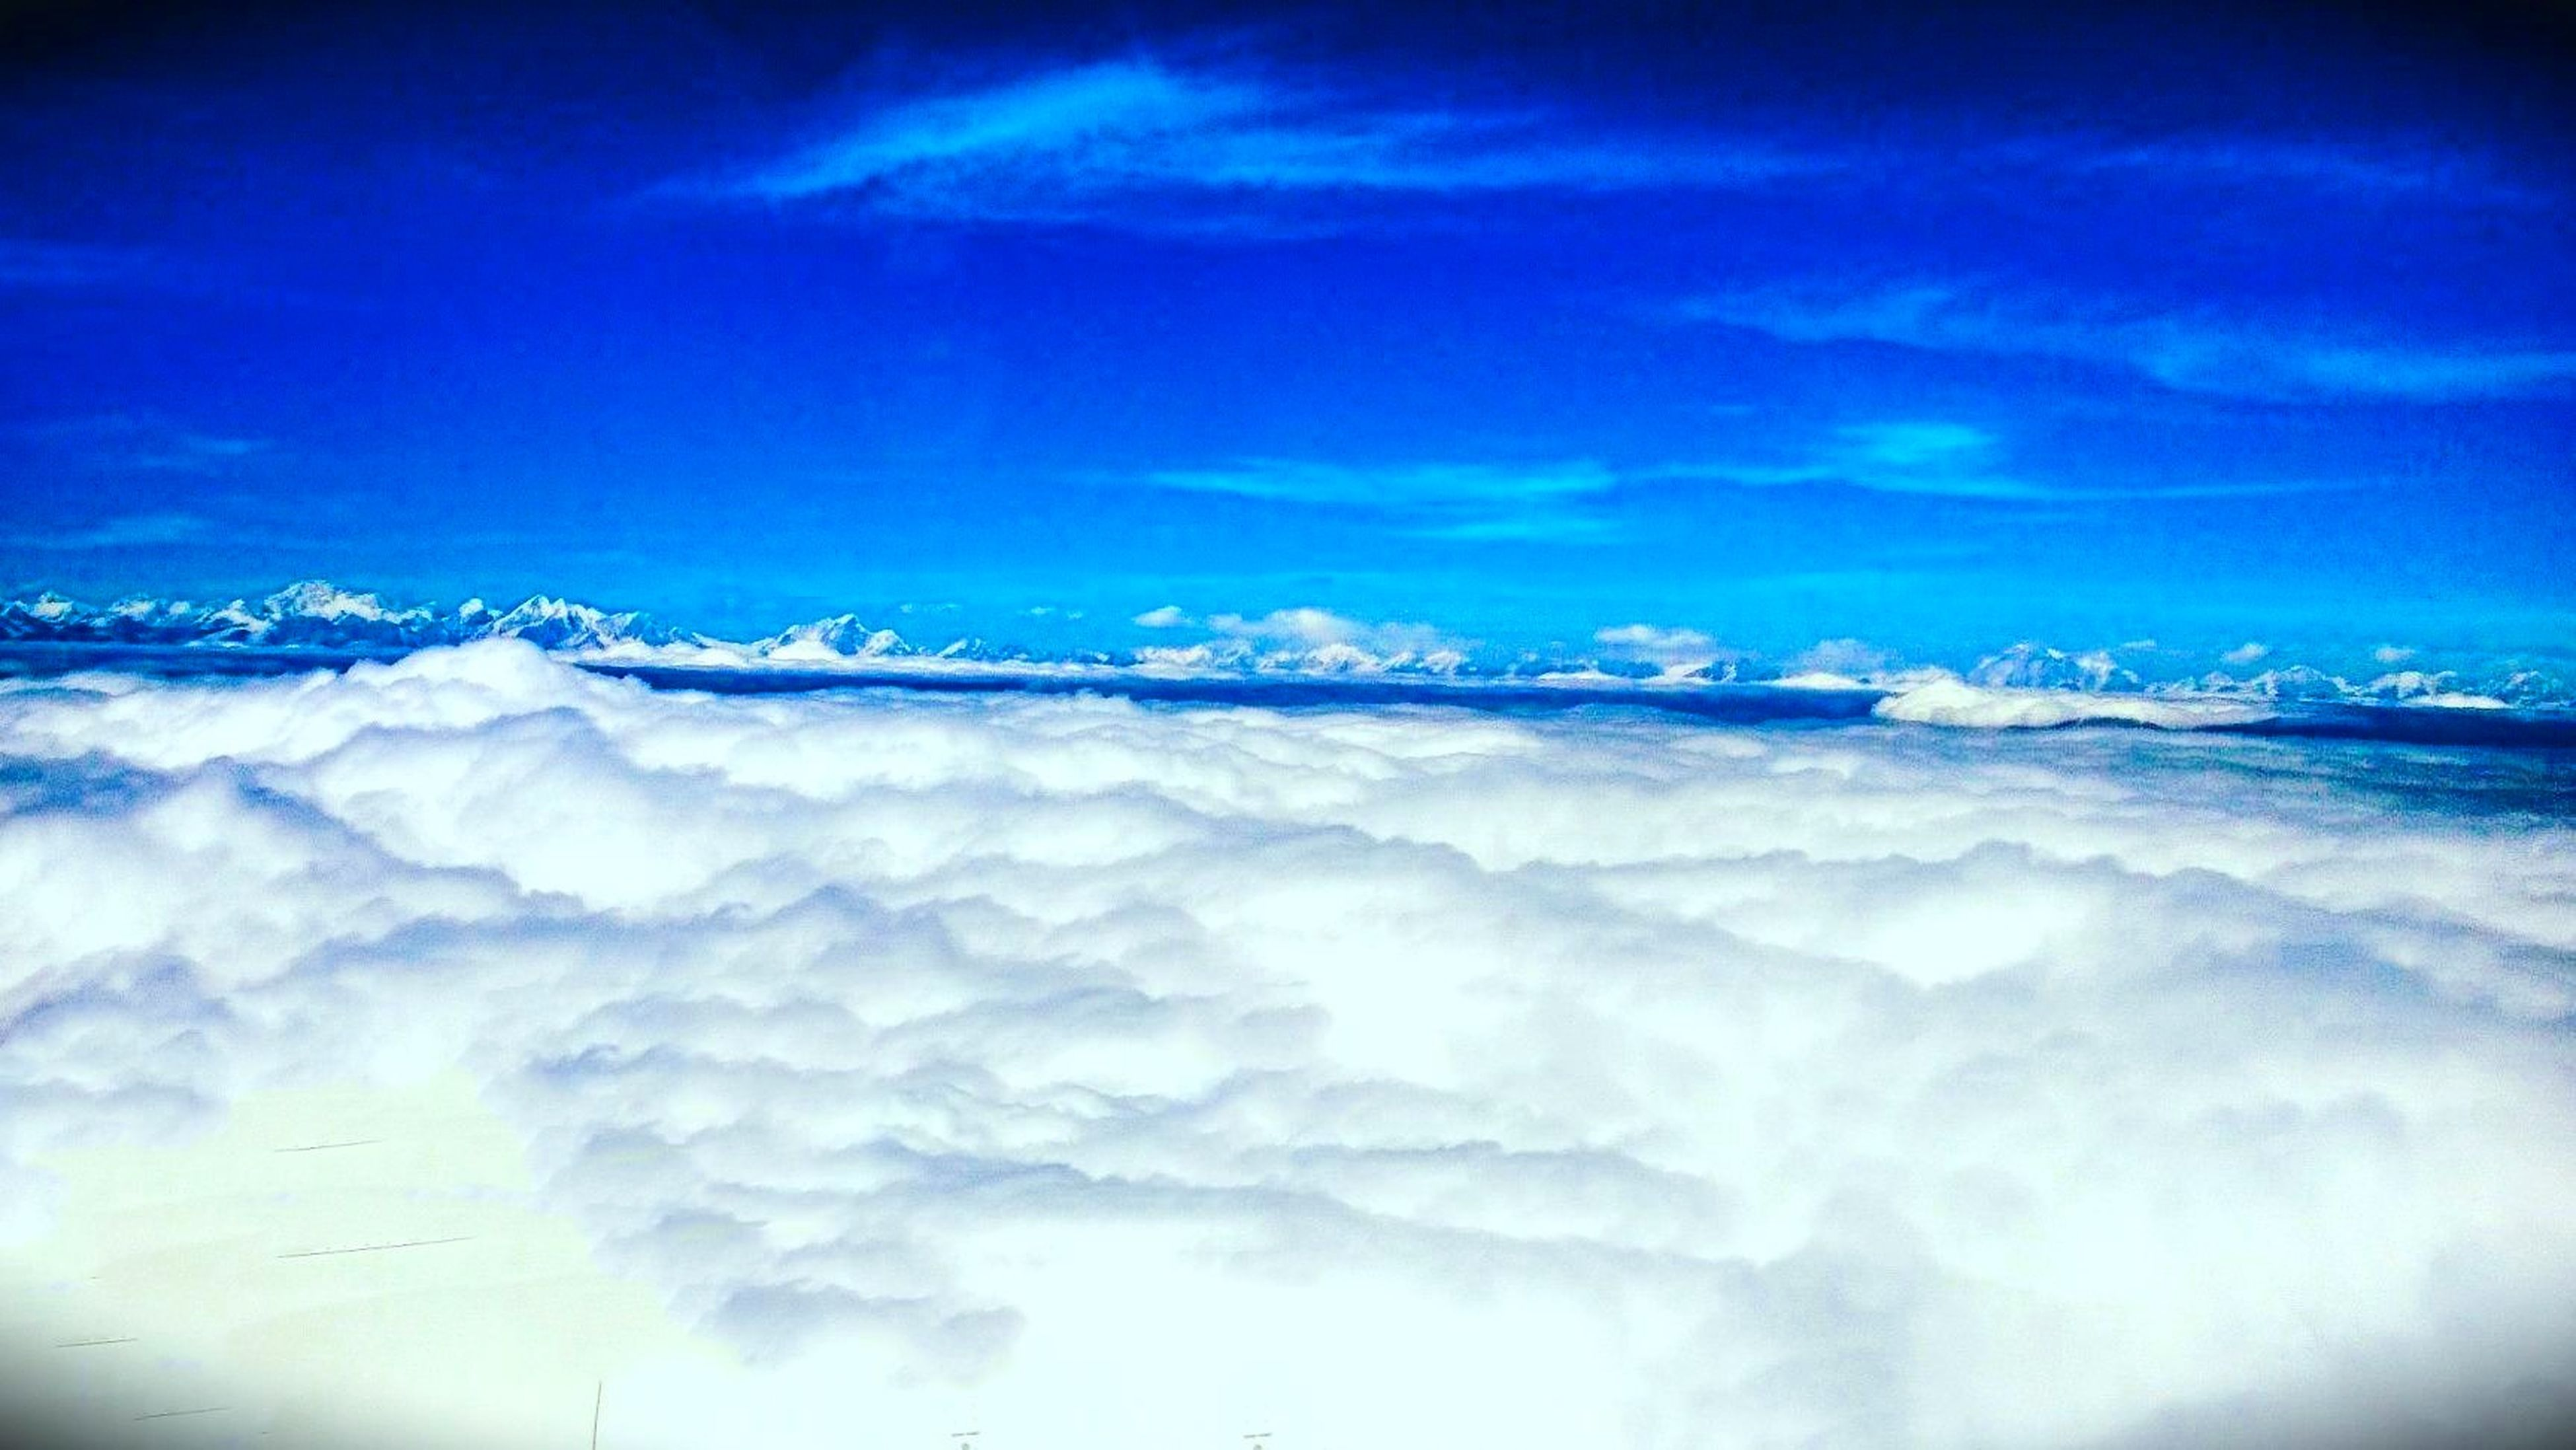 beauty in nature, nature, blue, scenics, sky, tranquility, white color, tranquil scene, no people, cloud - sky, cold temperature, outdoors, snow, day, winter, iceberg, scenic view, airplane wing